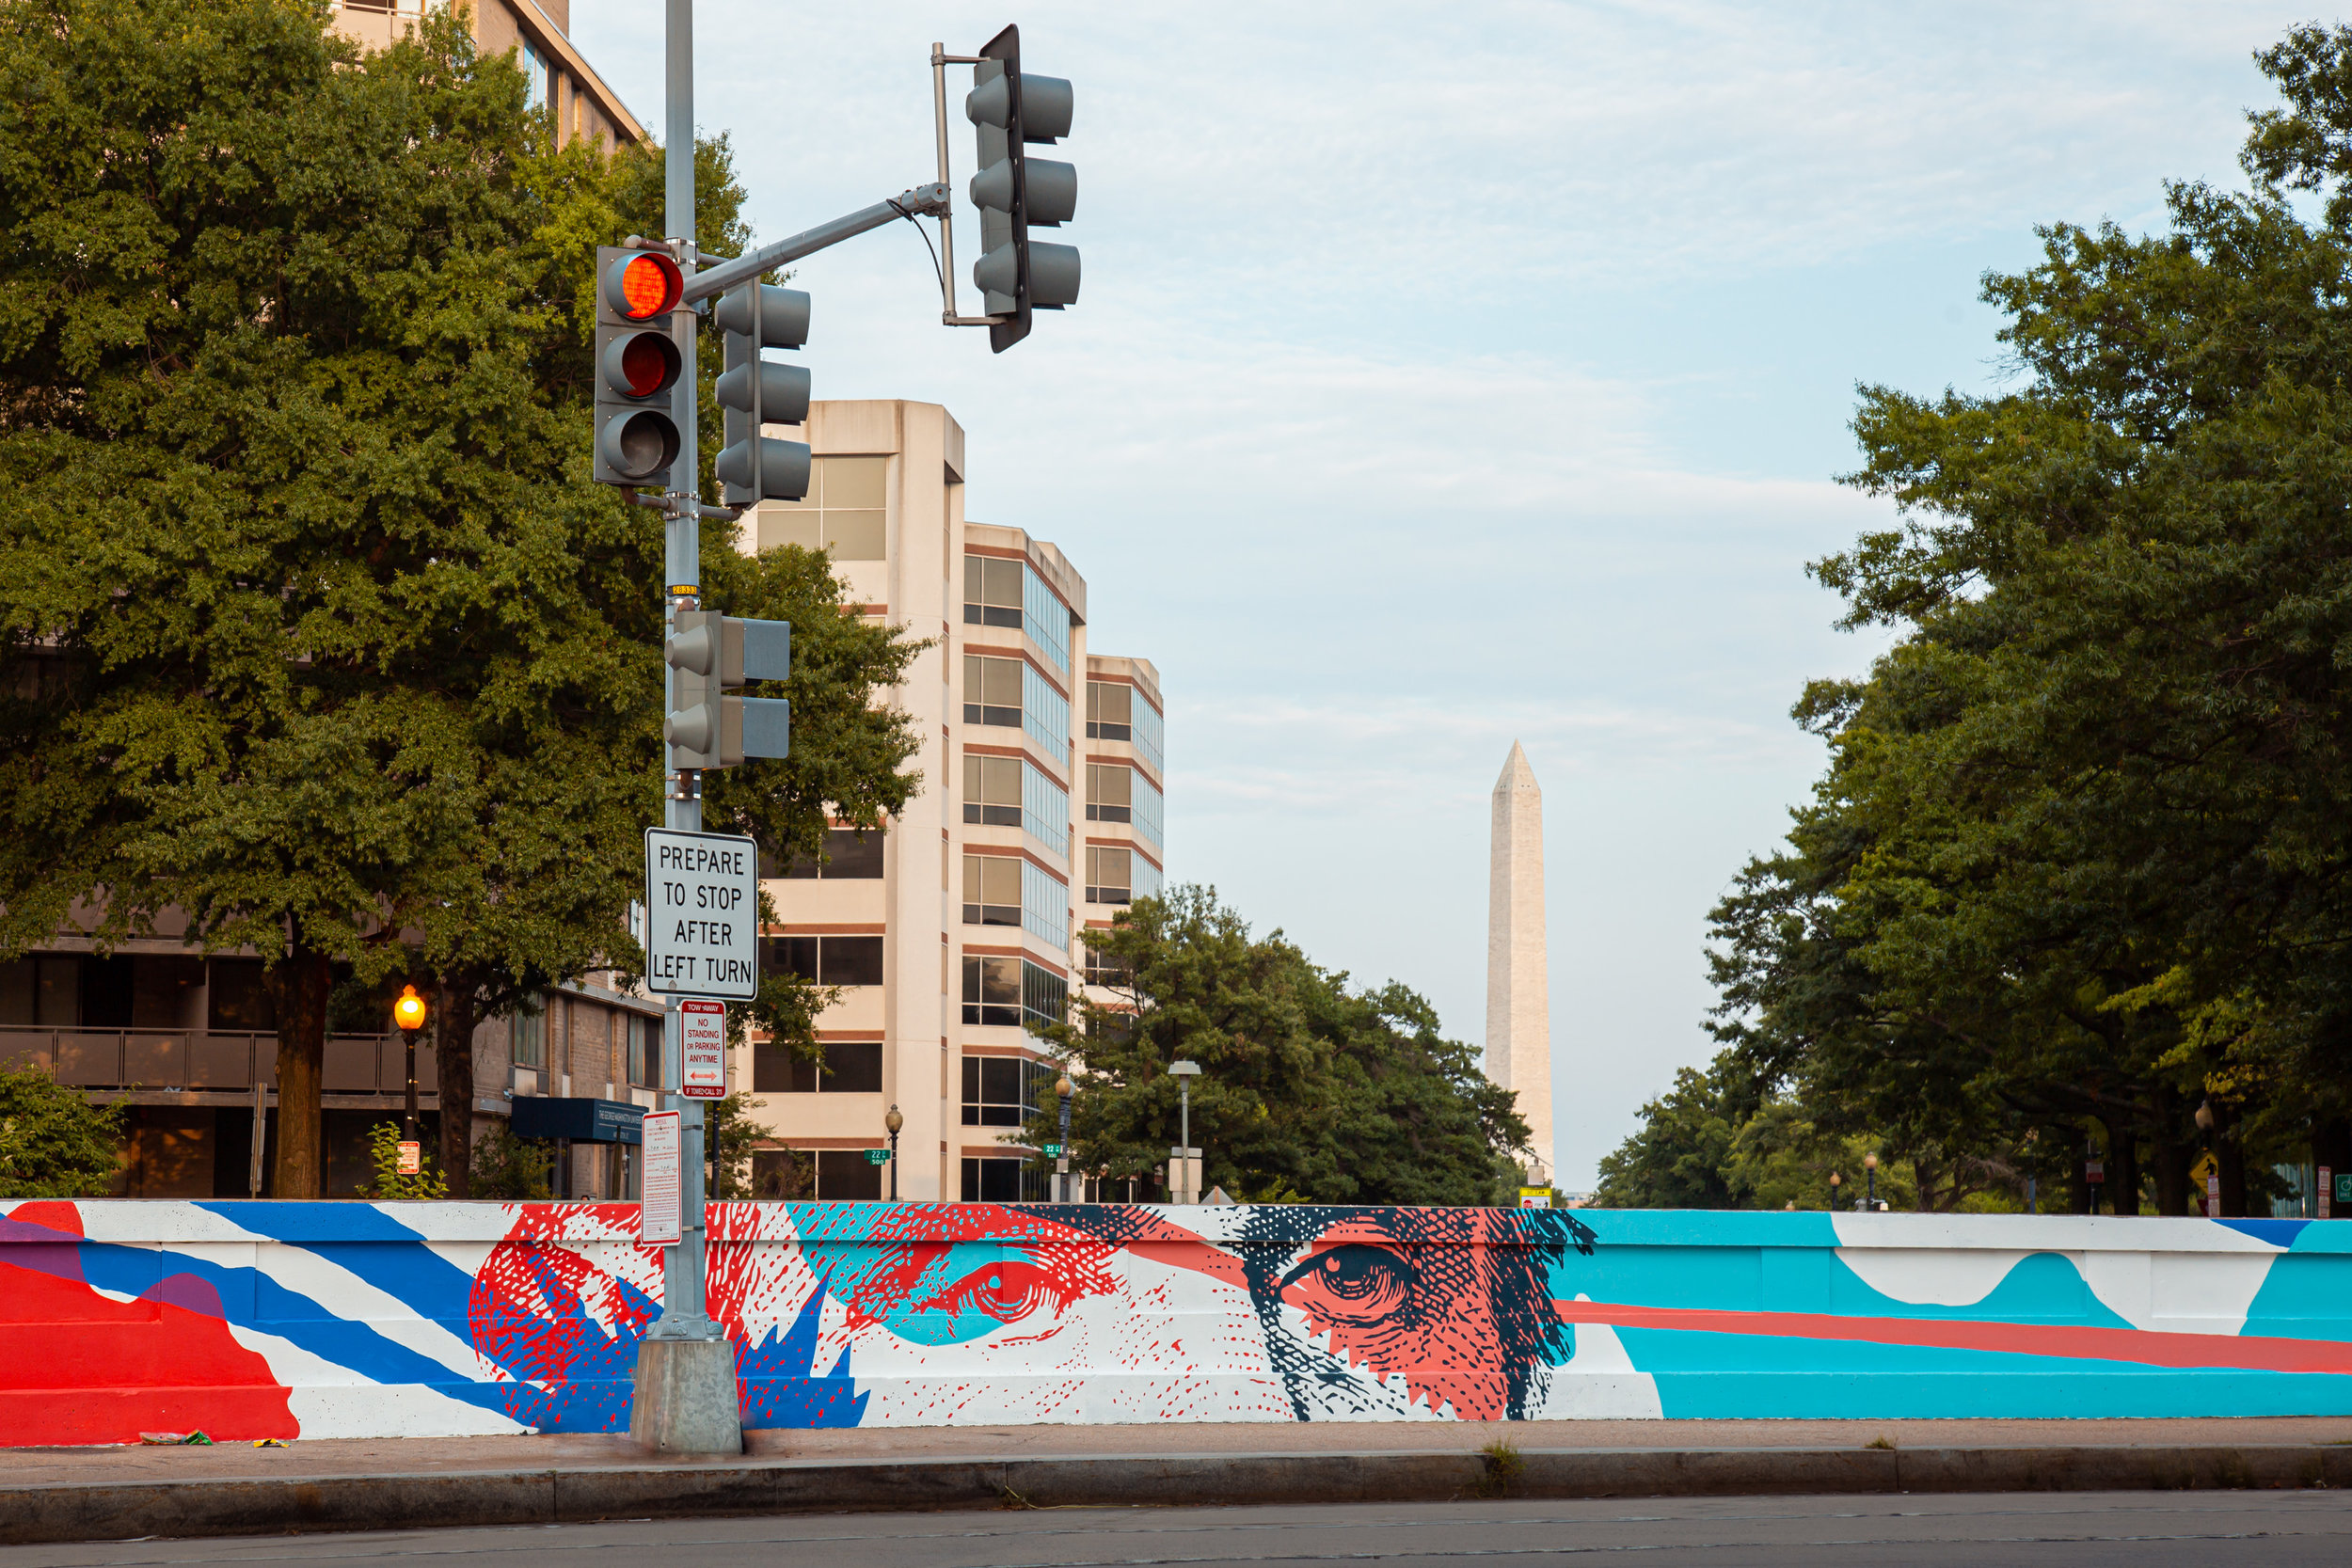 Mural by  JD Deardourff.  Project of CulturalDC for Abdo. Photo by Ryan Maxwell. Client: CulturalDC/Abdo. Location: Virginia Ave & 23rd St NW, Washington, DC.